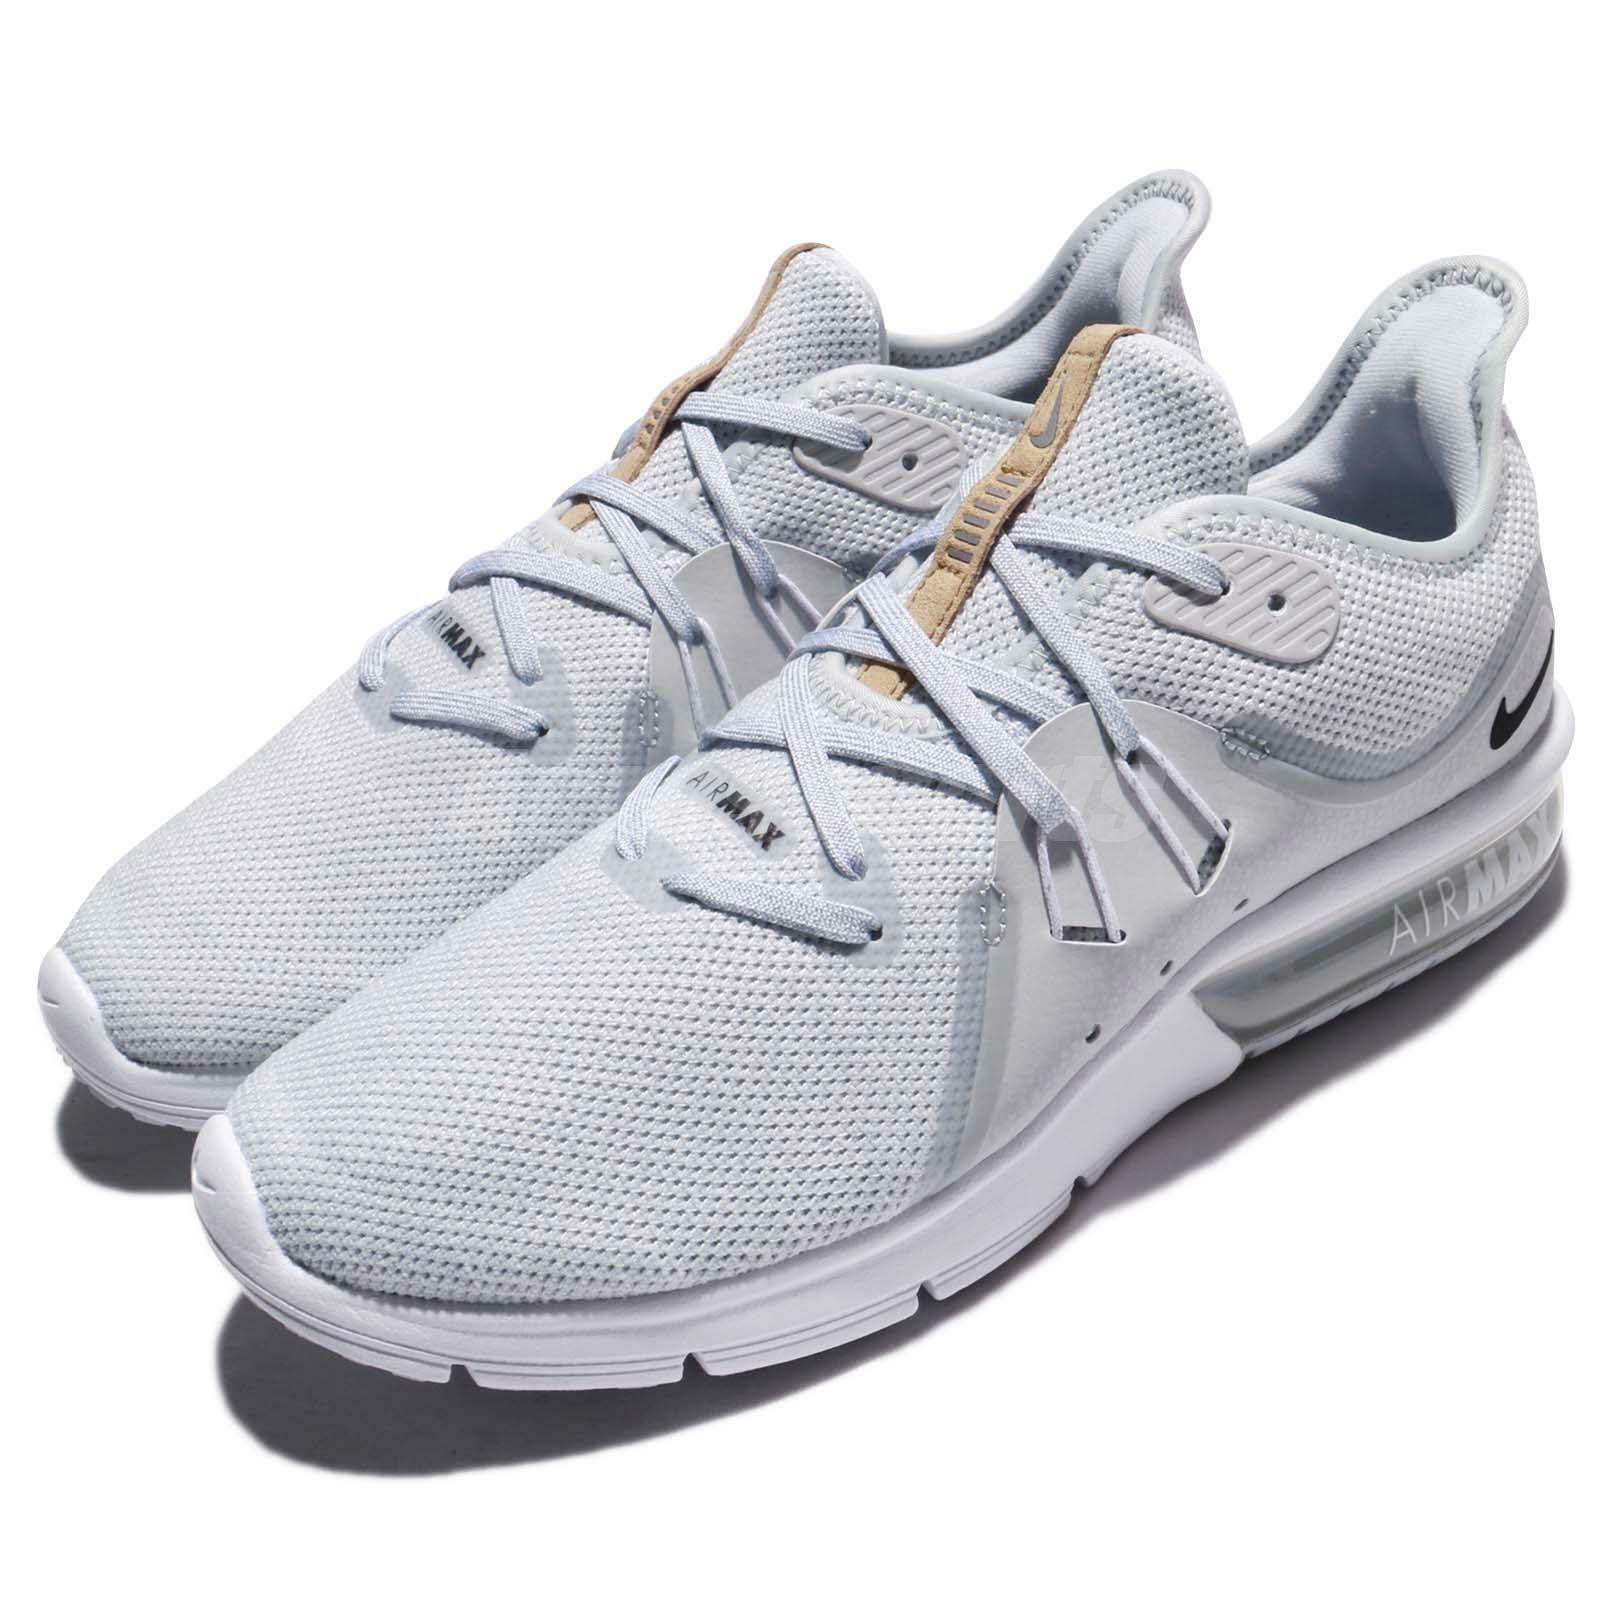 Nike Air Max Sequent 3 III Pure Platinum White Men Running shoes 921694-008